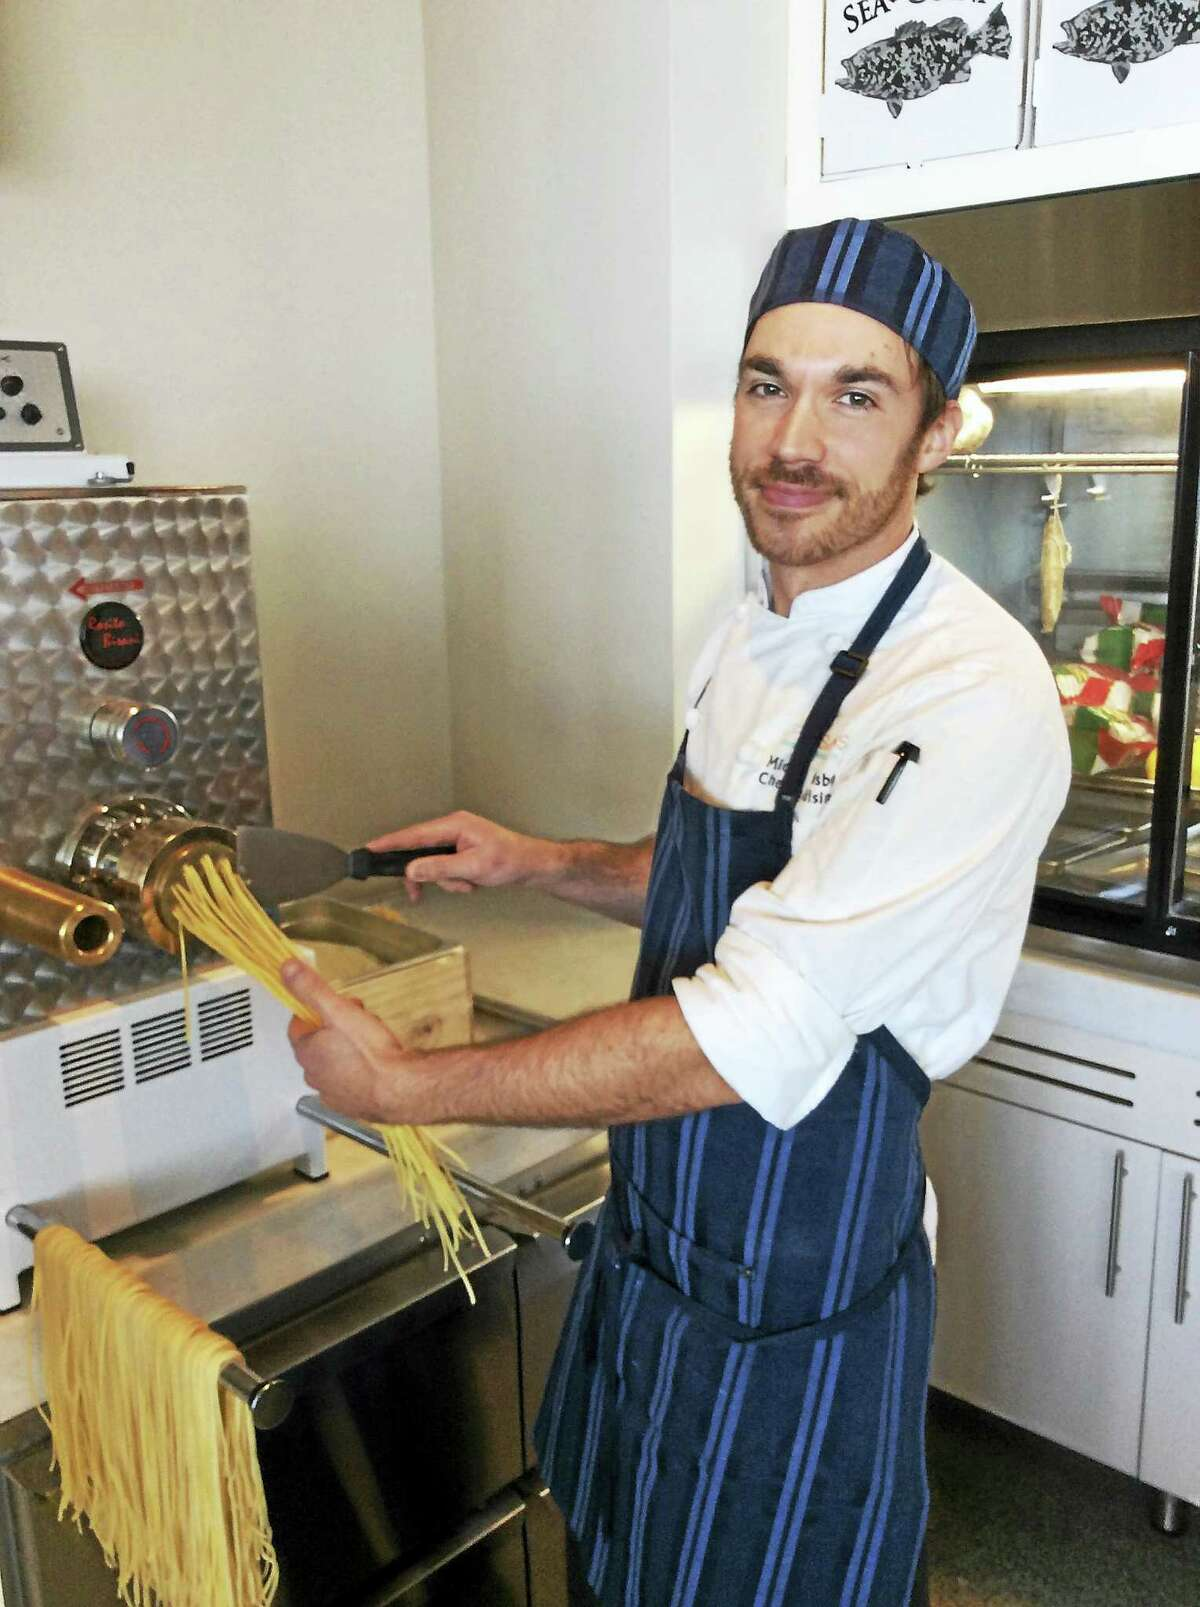 Mike Crosby, chef de cuisine, making the pasta at the Opal Sands Resort.